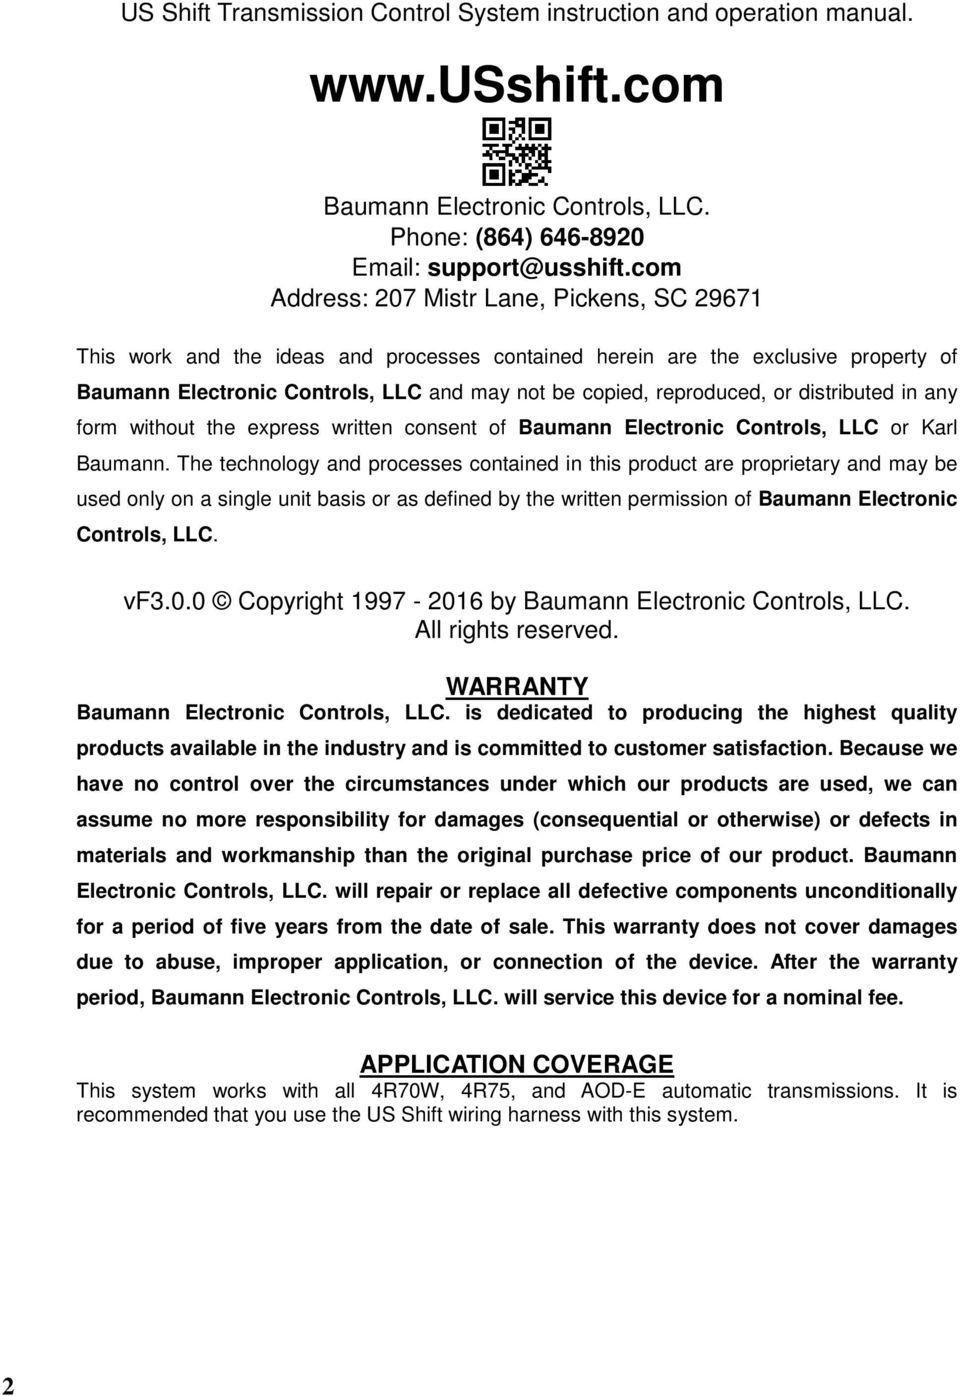 medium resolution of or distributed in any form without the express written consent of baumann electronic controls llc